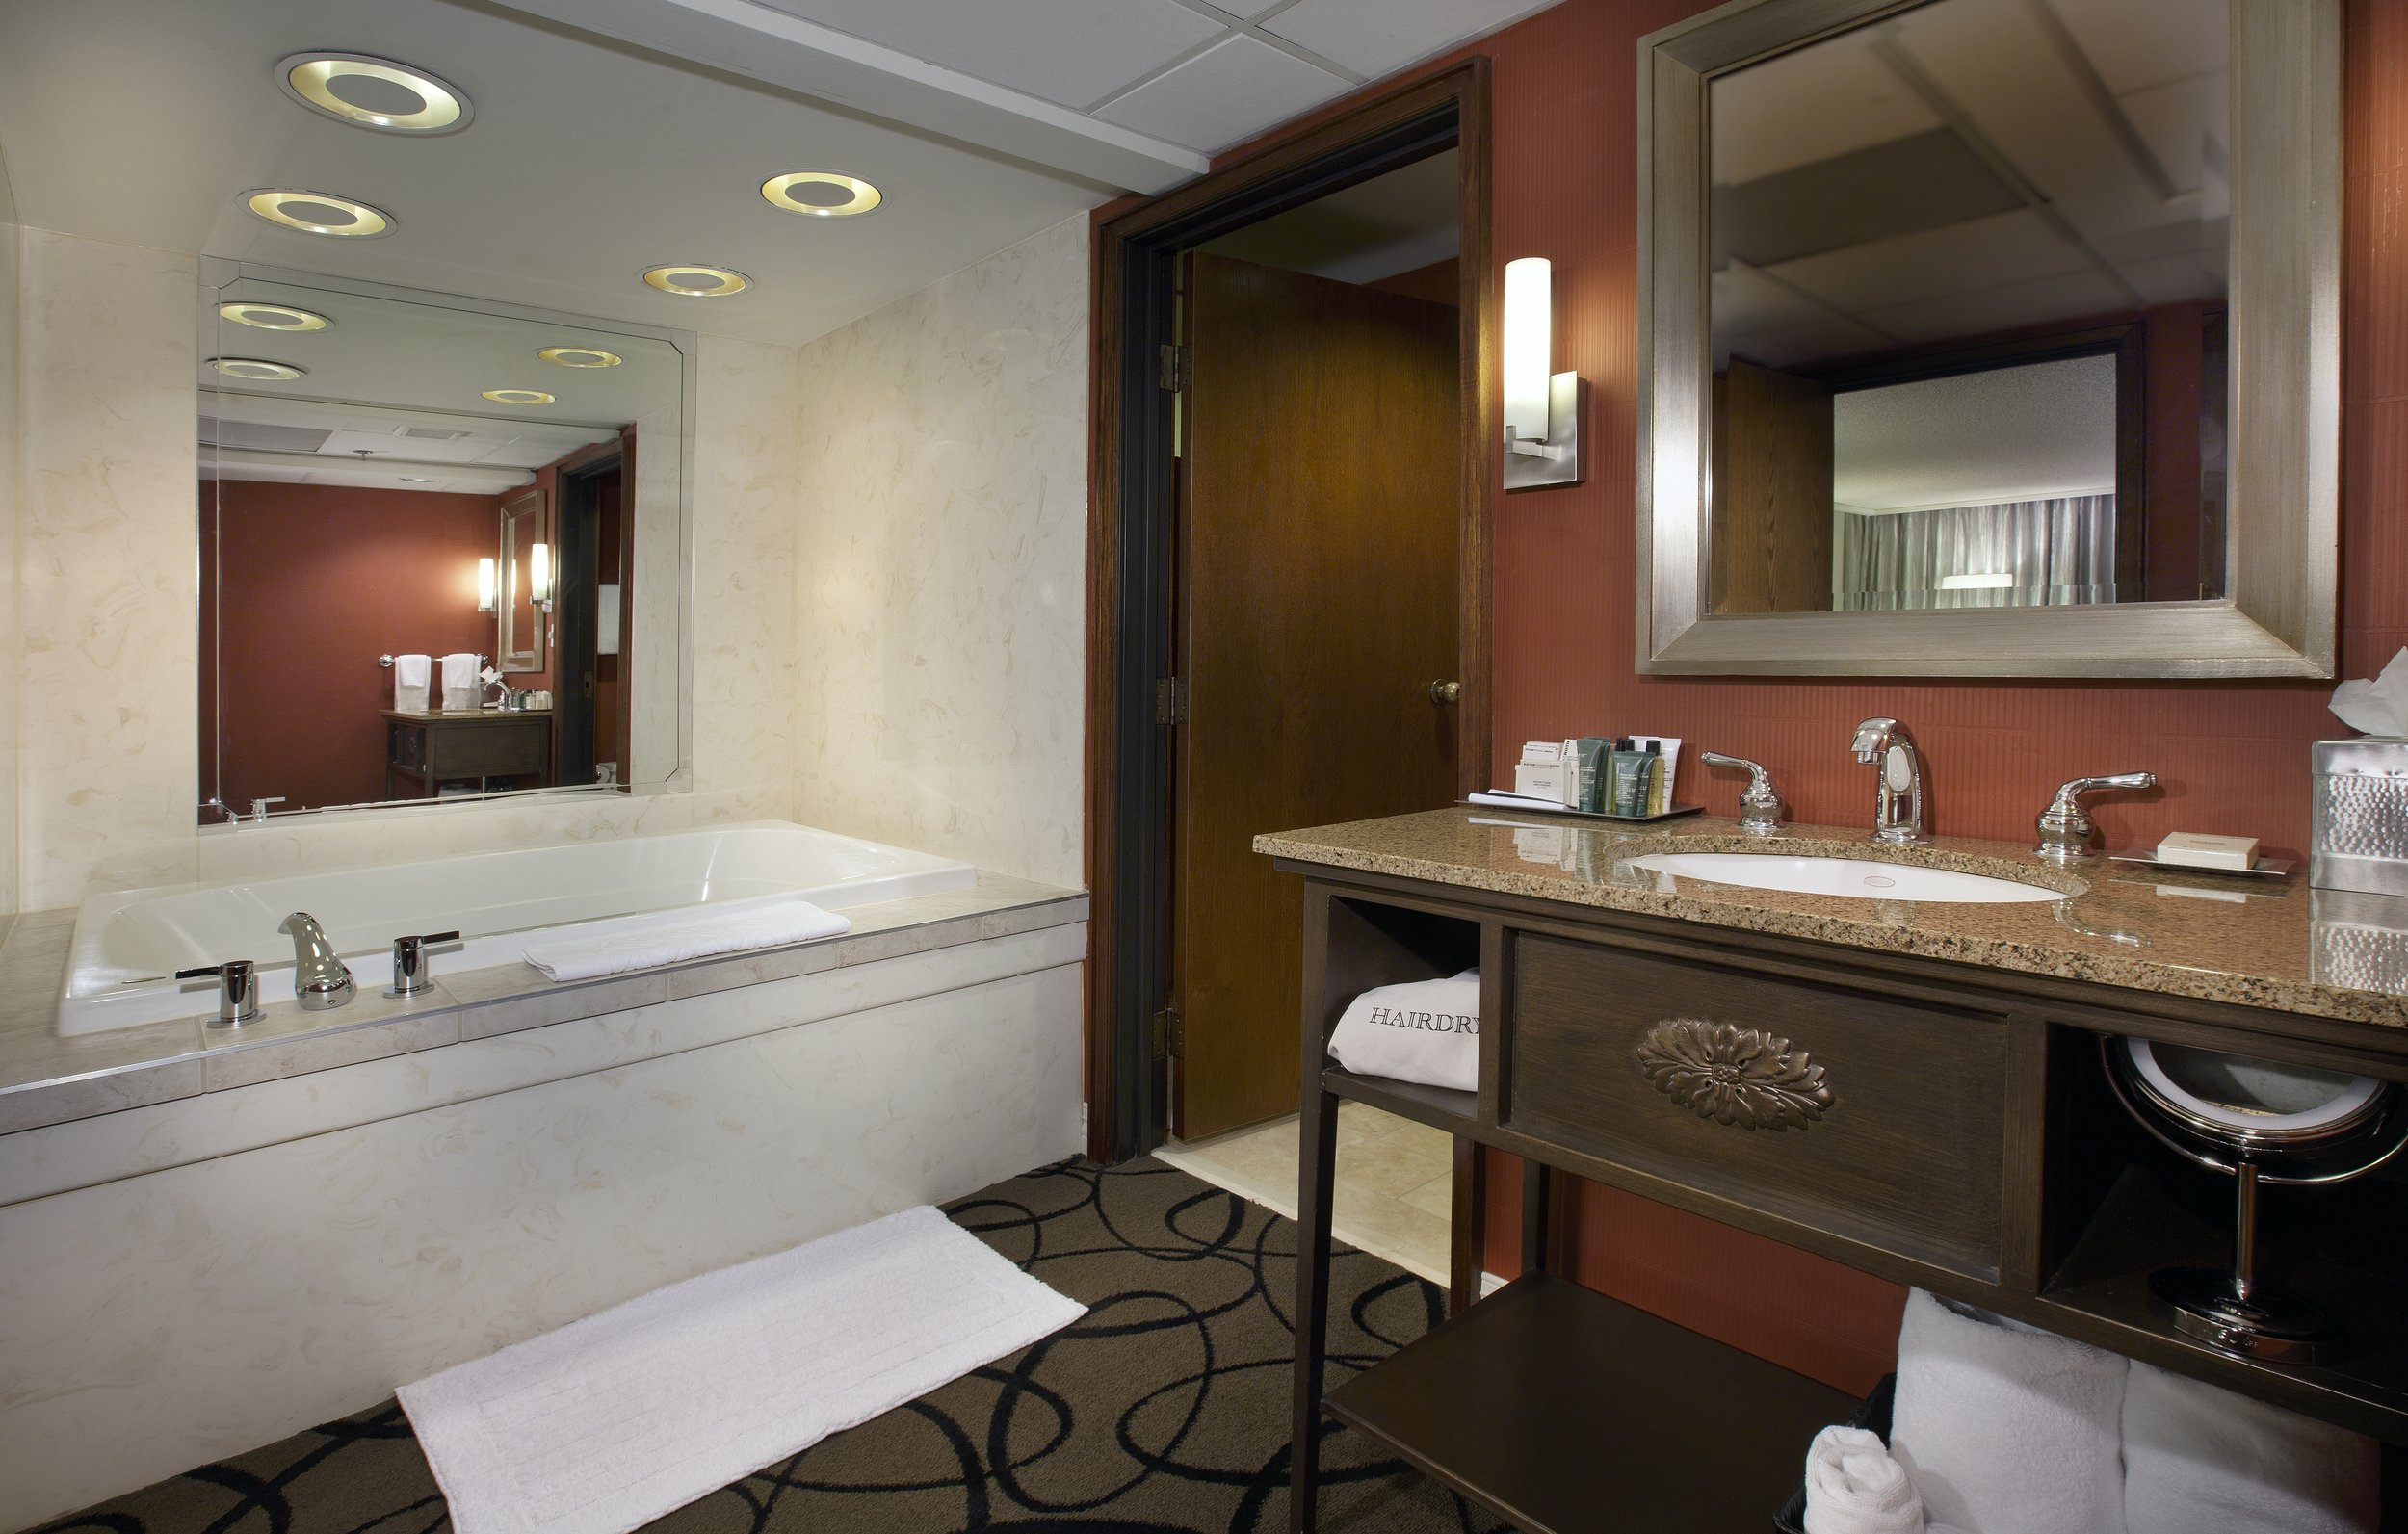 Parlor Suite Bathroom.JPG